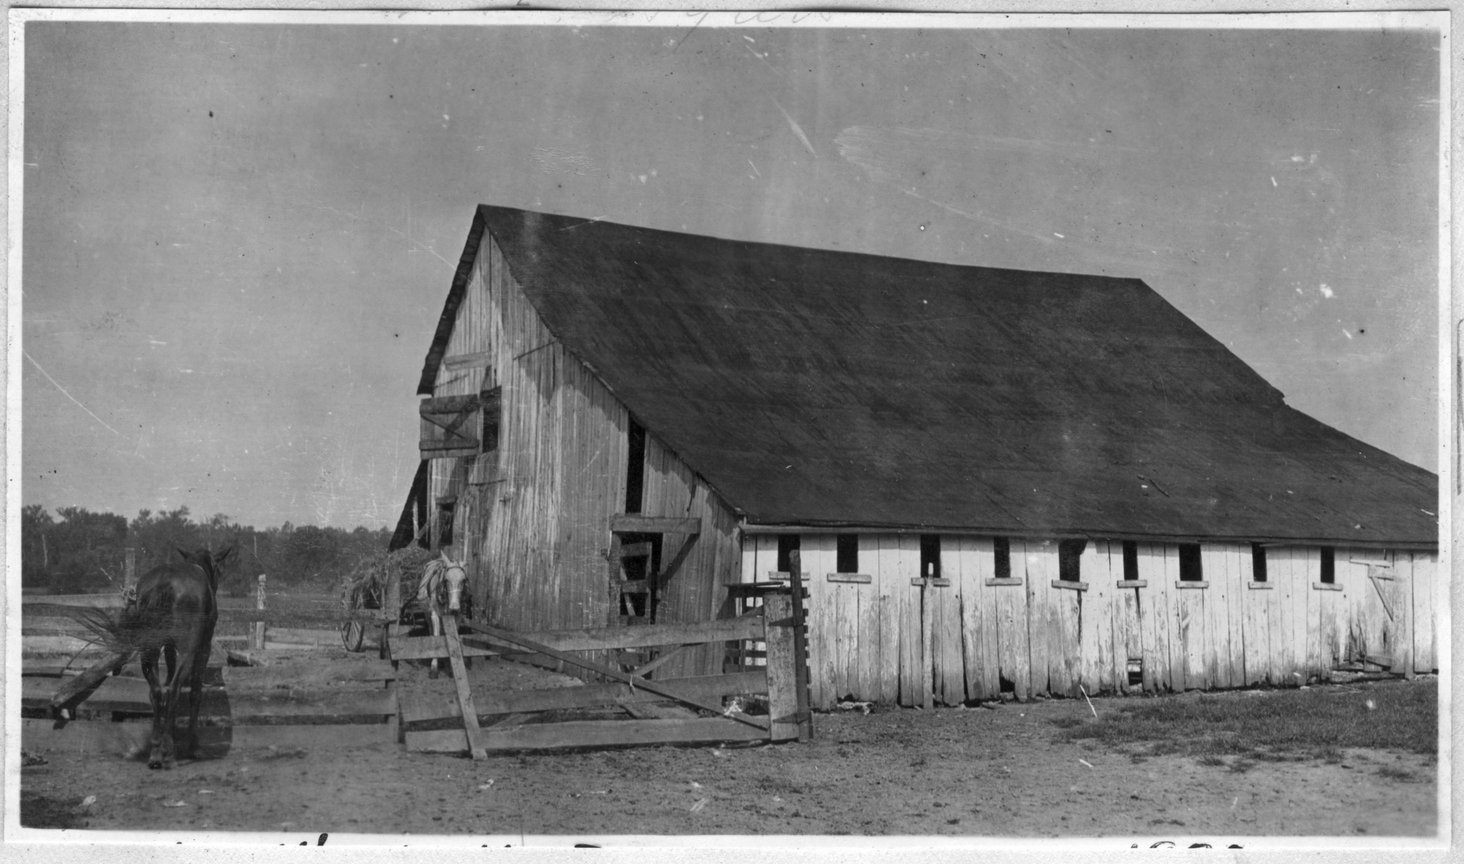 049~M. F. Hyatt Dairy Barn Aug 1920.jpg